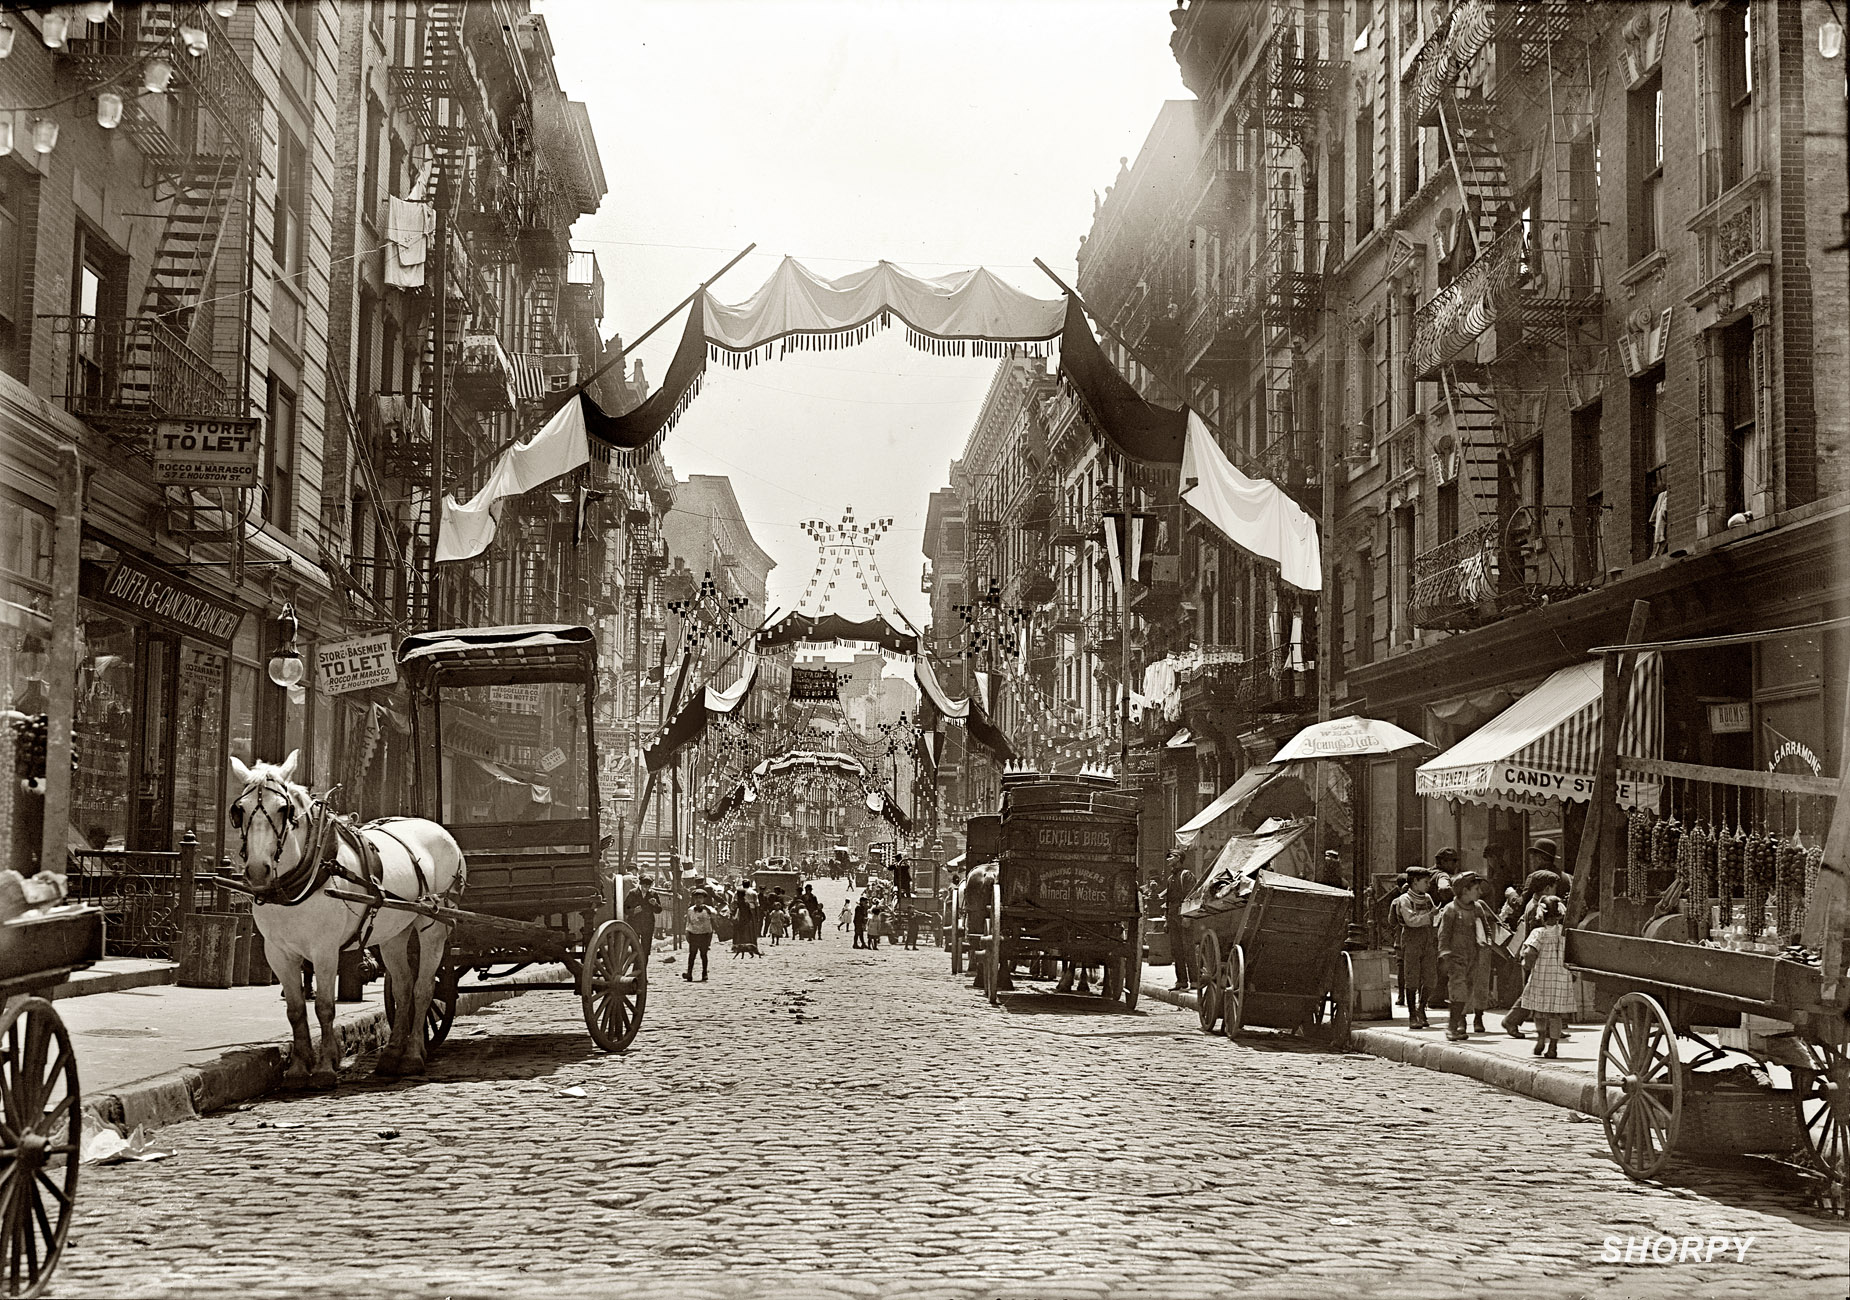 Mott Street all fancied up for a religious festival in 1908. It's May 16, so perhaps Ascension Day? (Cleaned up picture courtesy Shorpy)